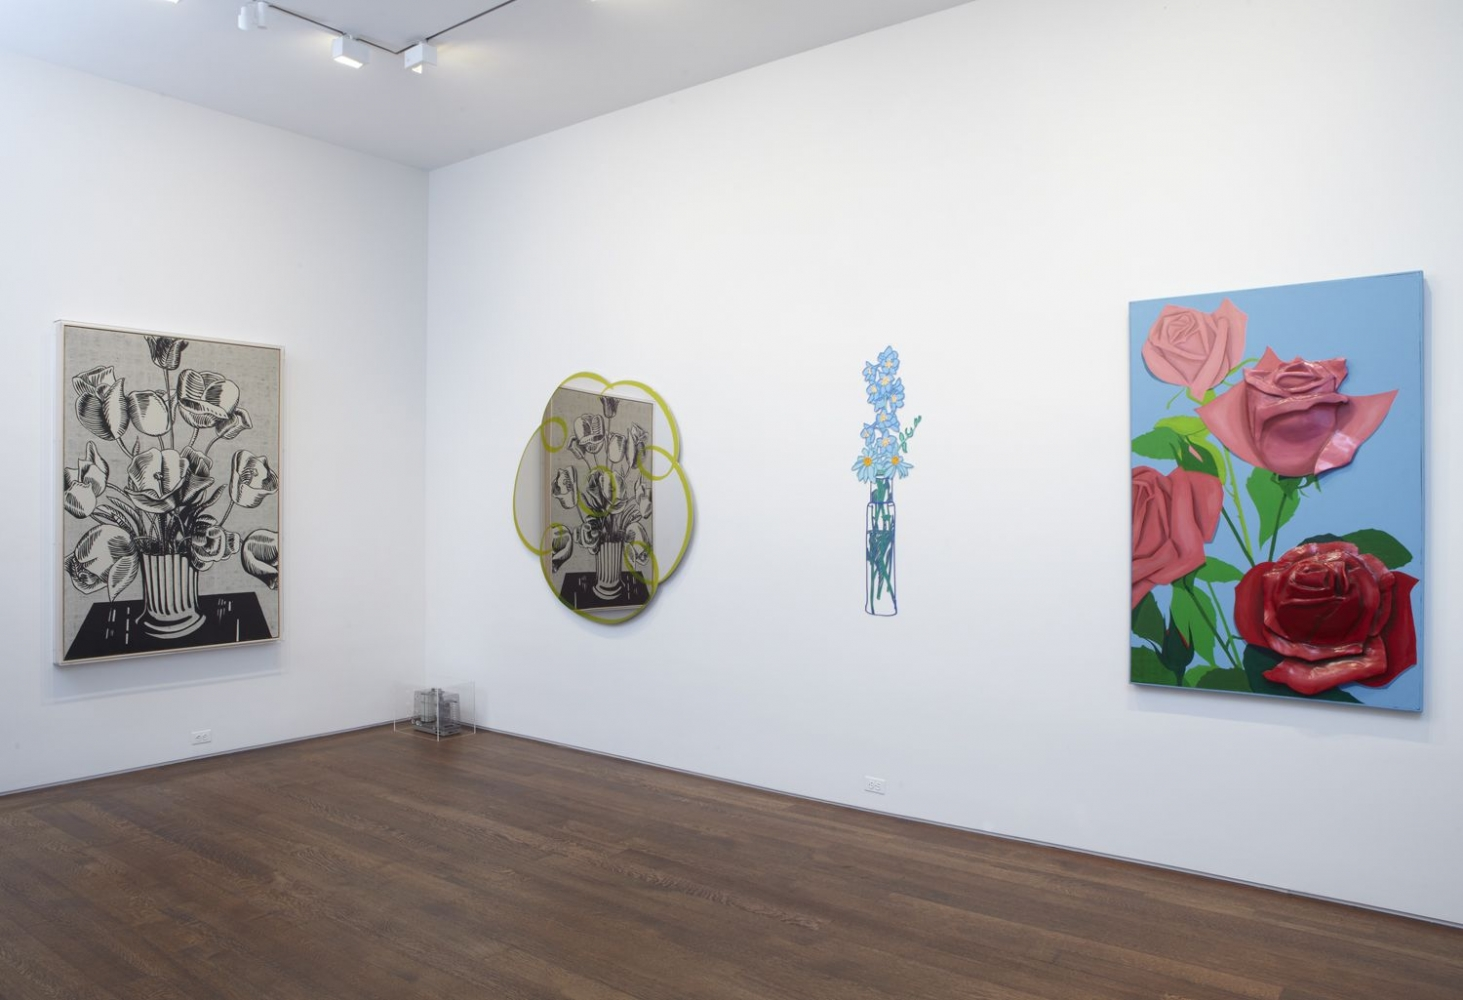 Installation view of The Pop Object: The Still Life Tradition in Pop Art, April 9 - May 23, 2013. Left to right: